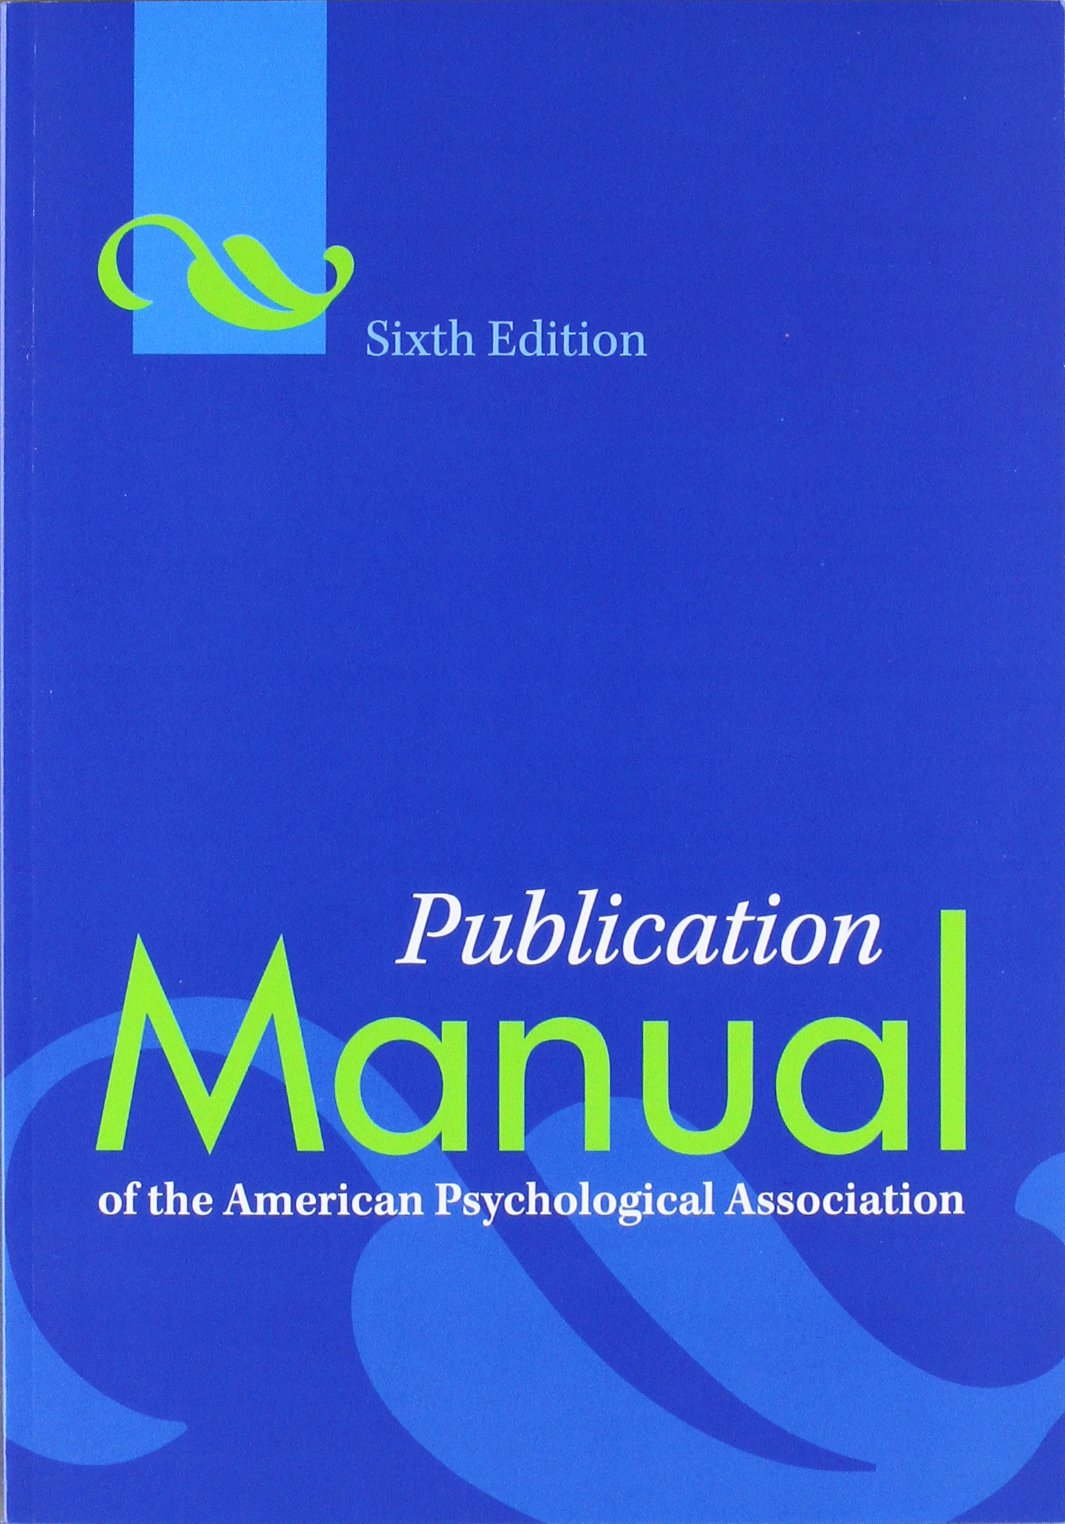 Amazon Com Publication Manual Of The American Psychological Association 6th Edition 3520100021035 Association American Psychological Books